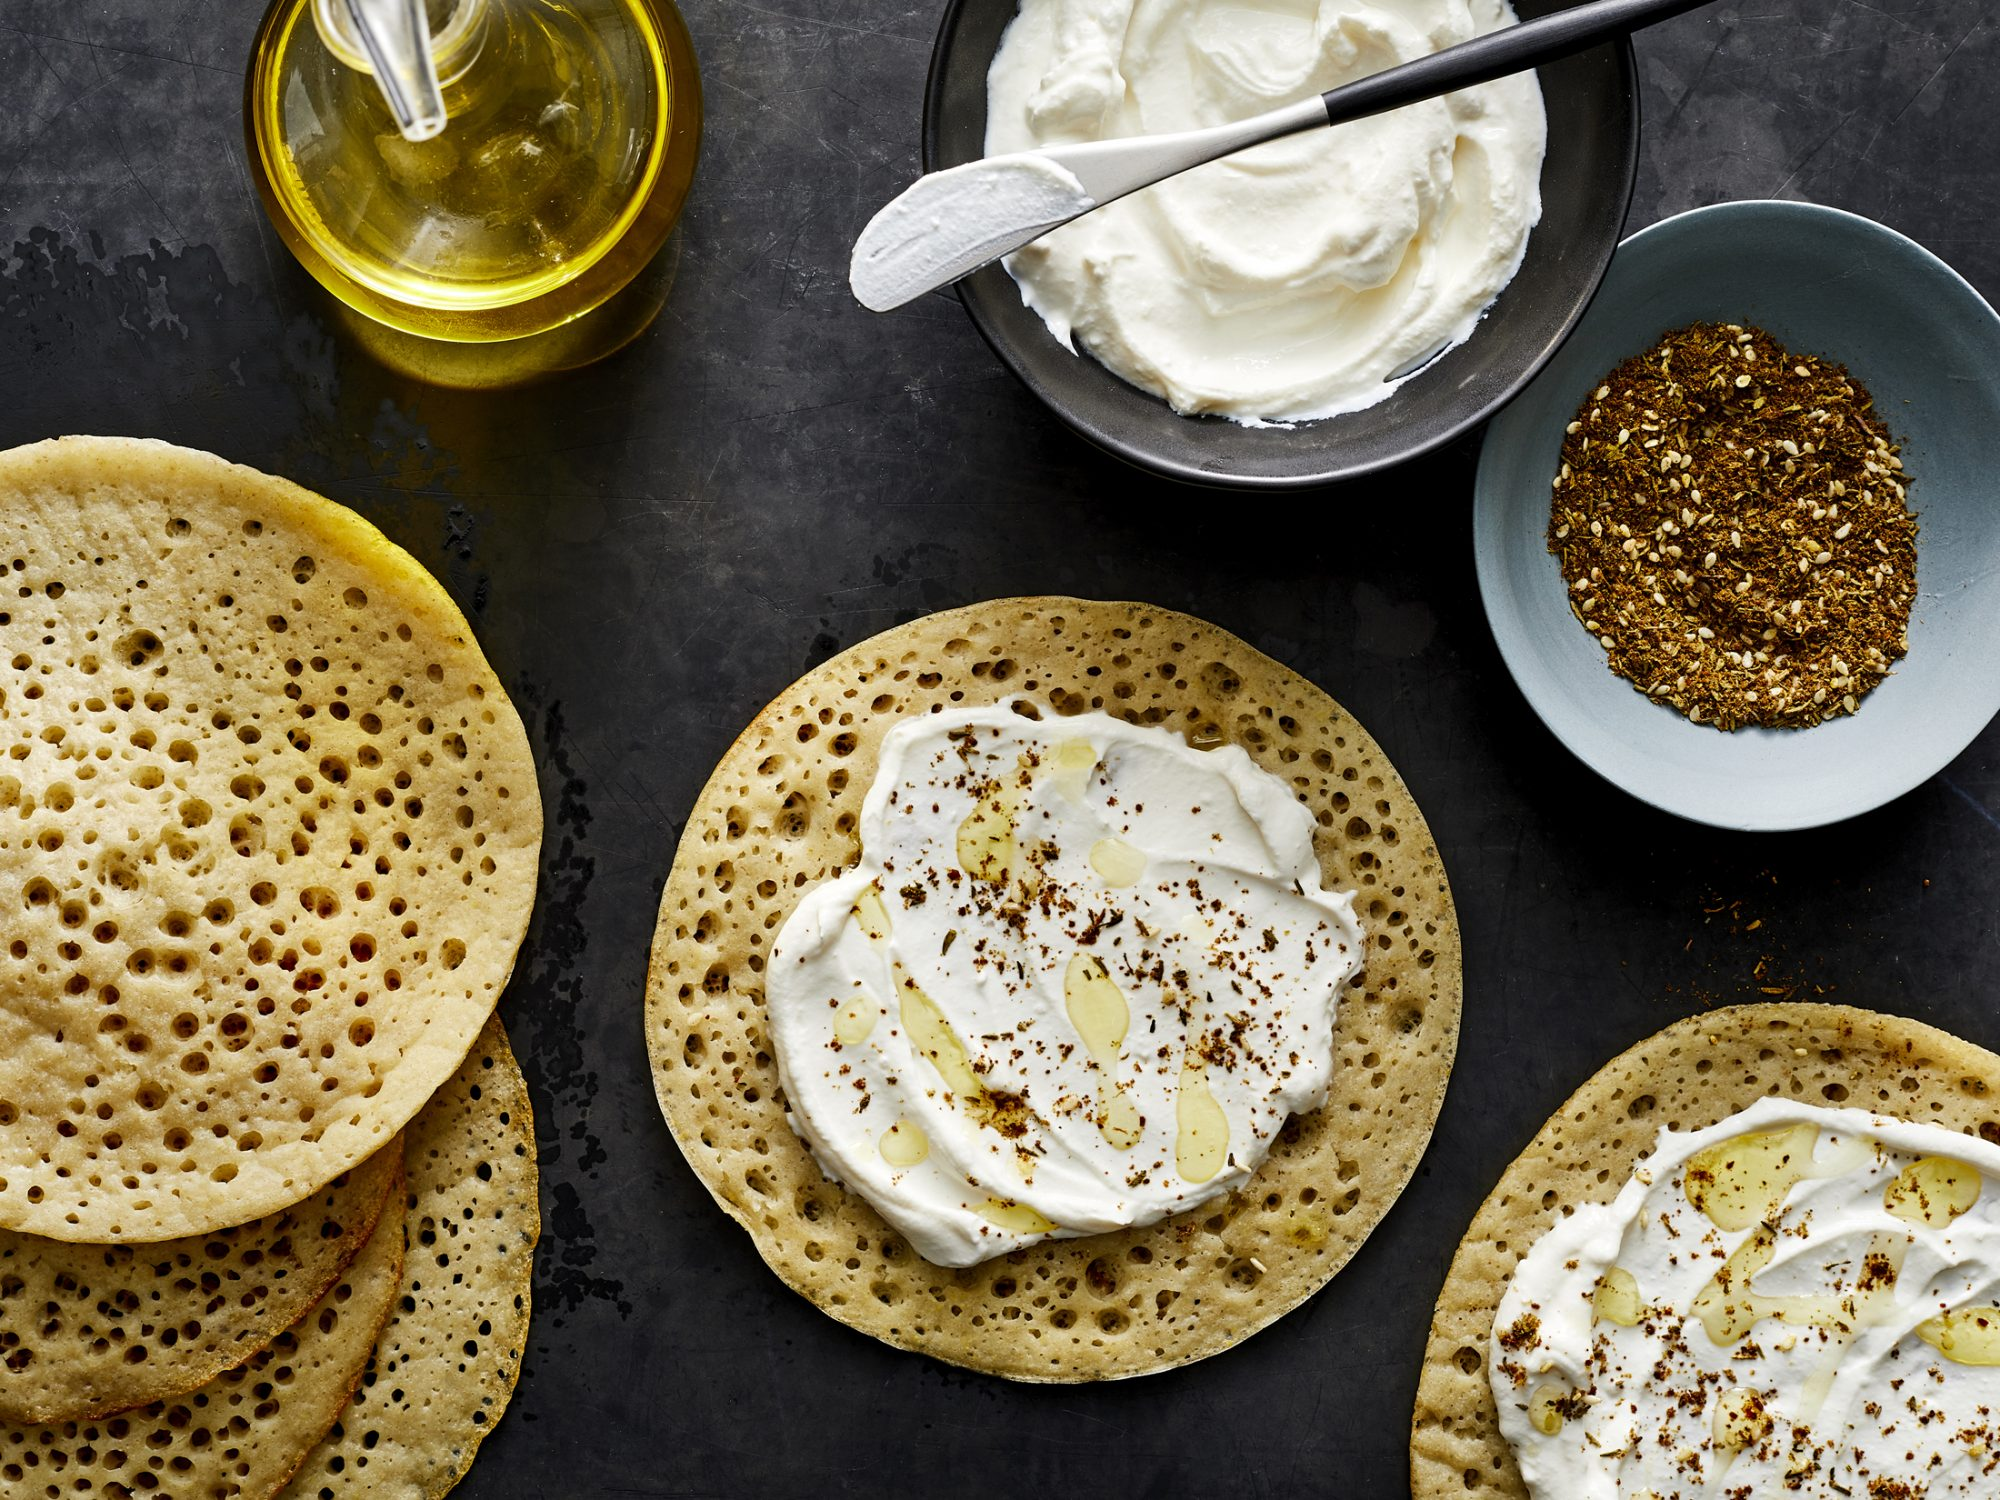 Lachuch with Labneh and Za'atar